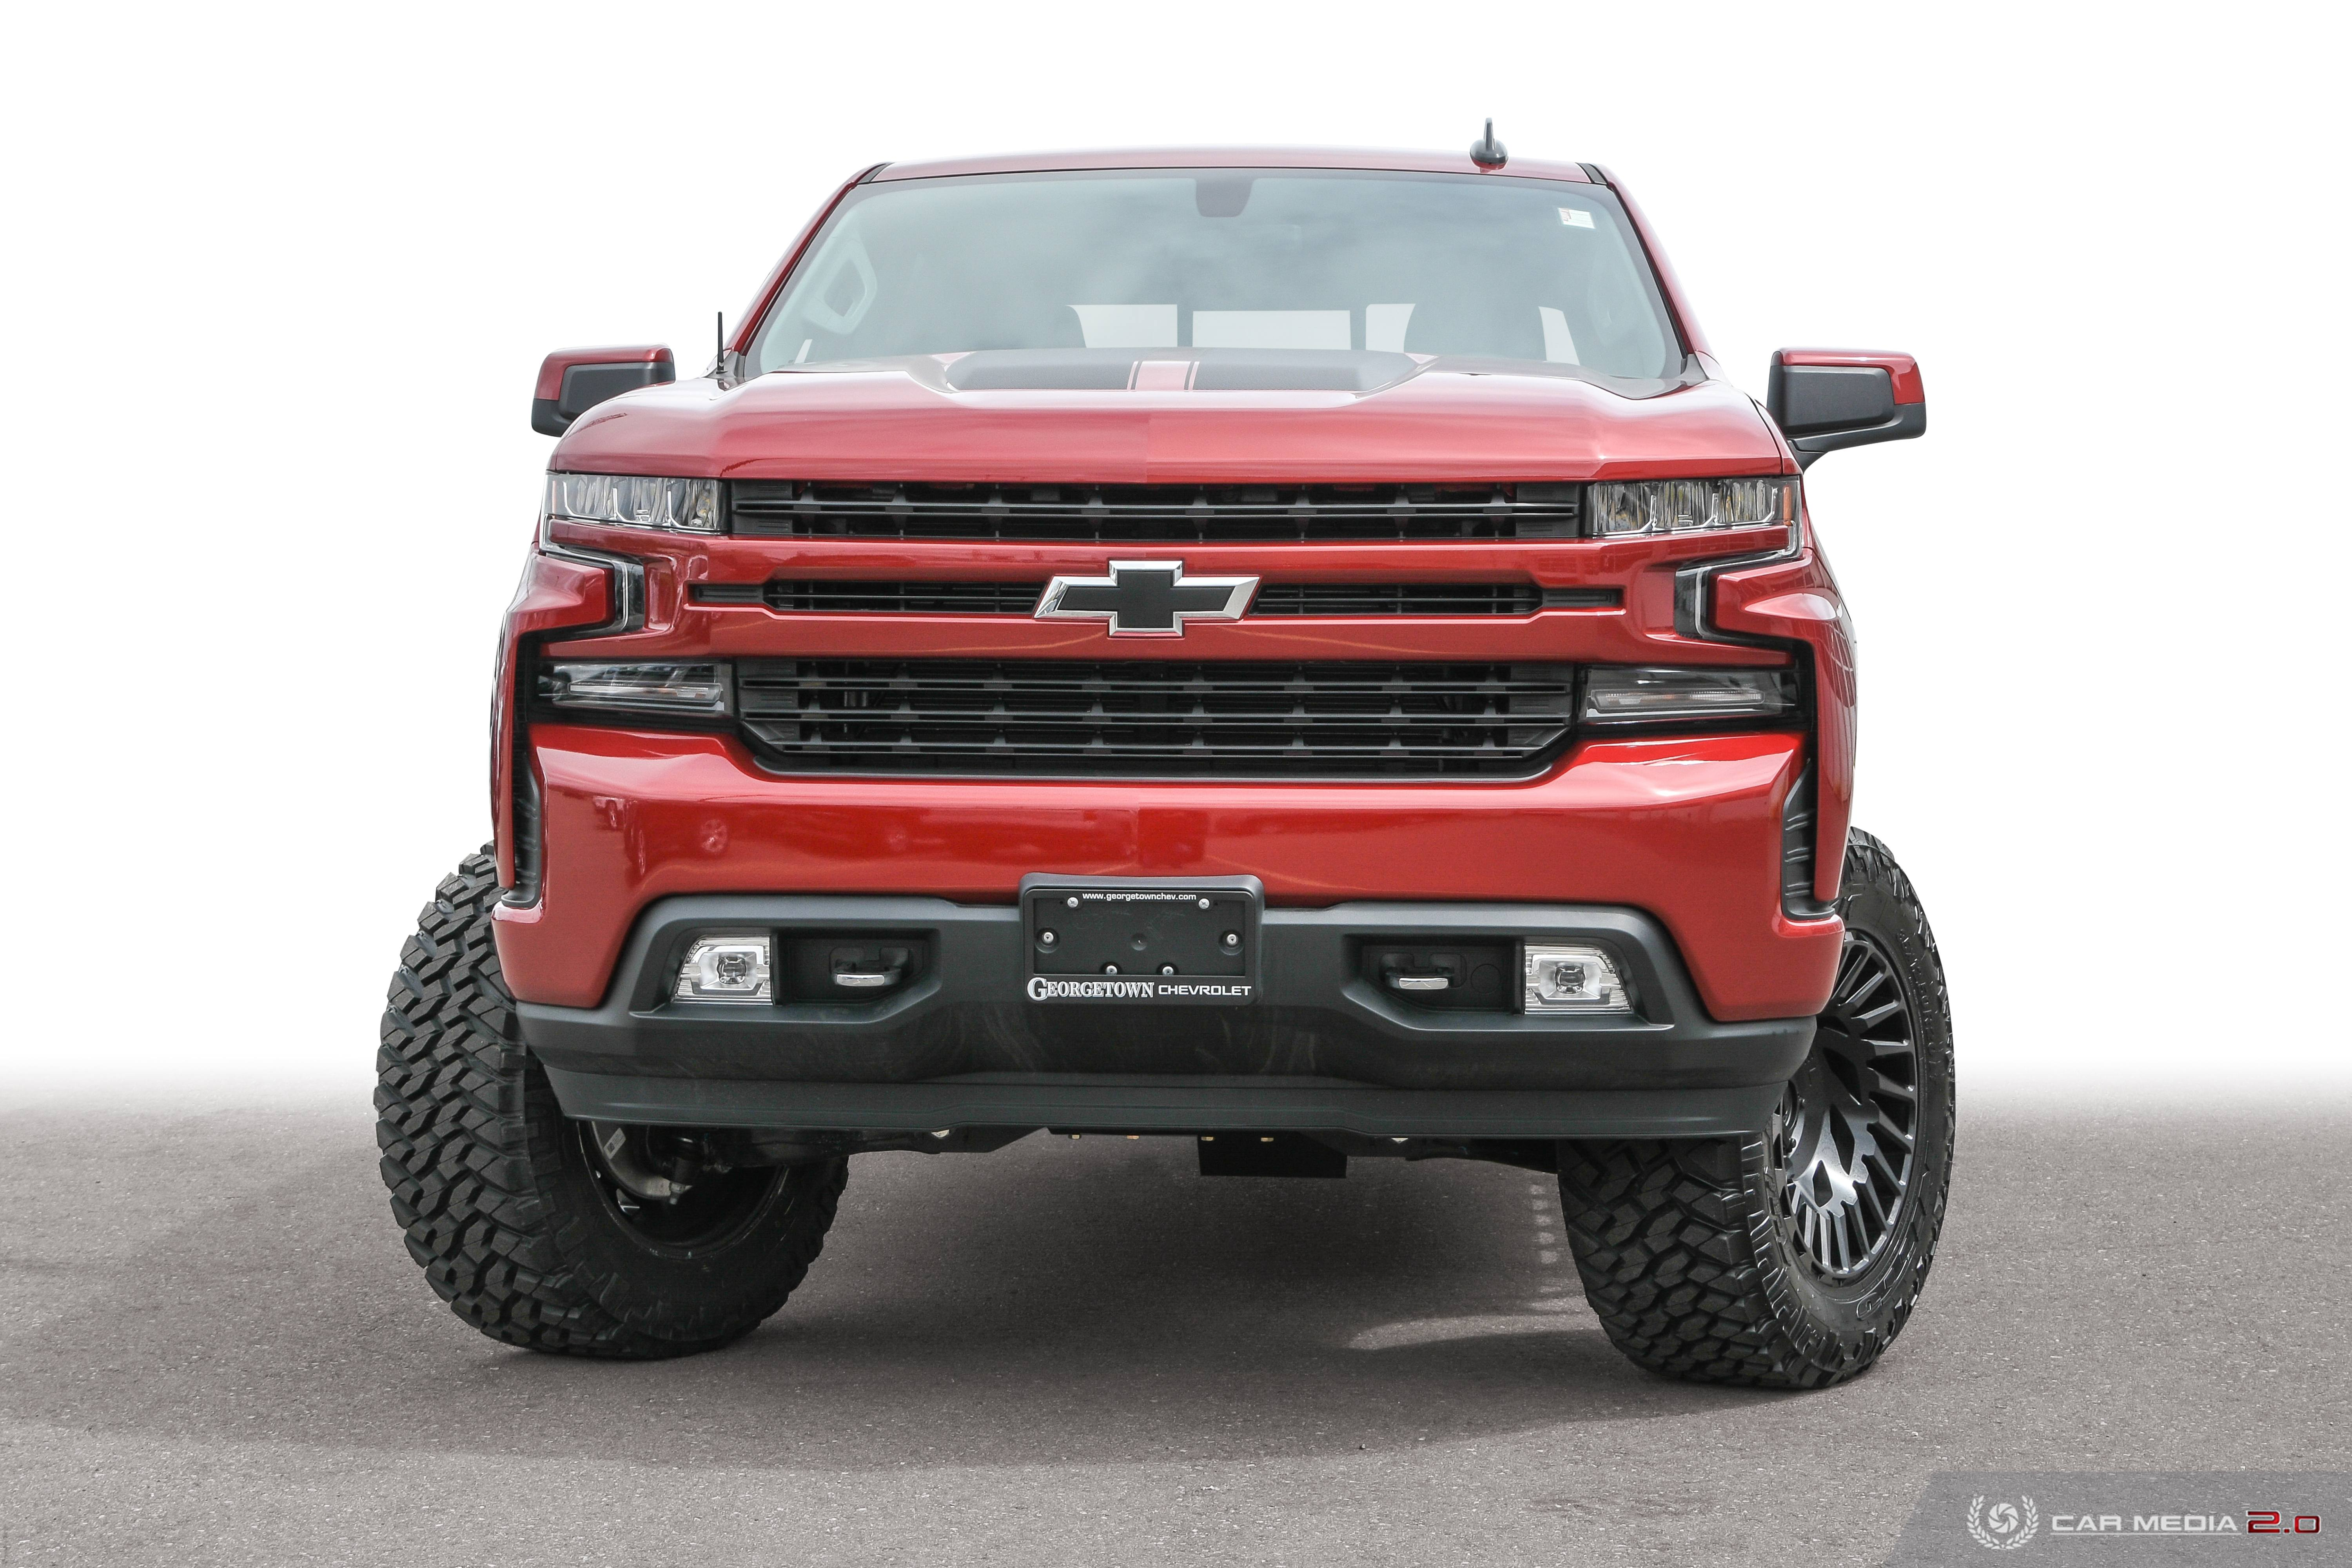 Red Skull | Custom Silverado Truck in Georgetown Ontario, Halton Hills and the Greater Toronto Area from your home for Custom Trucks